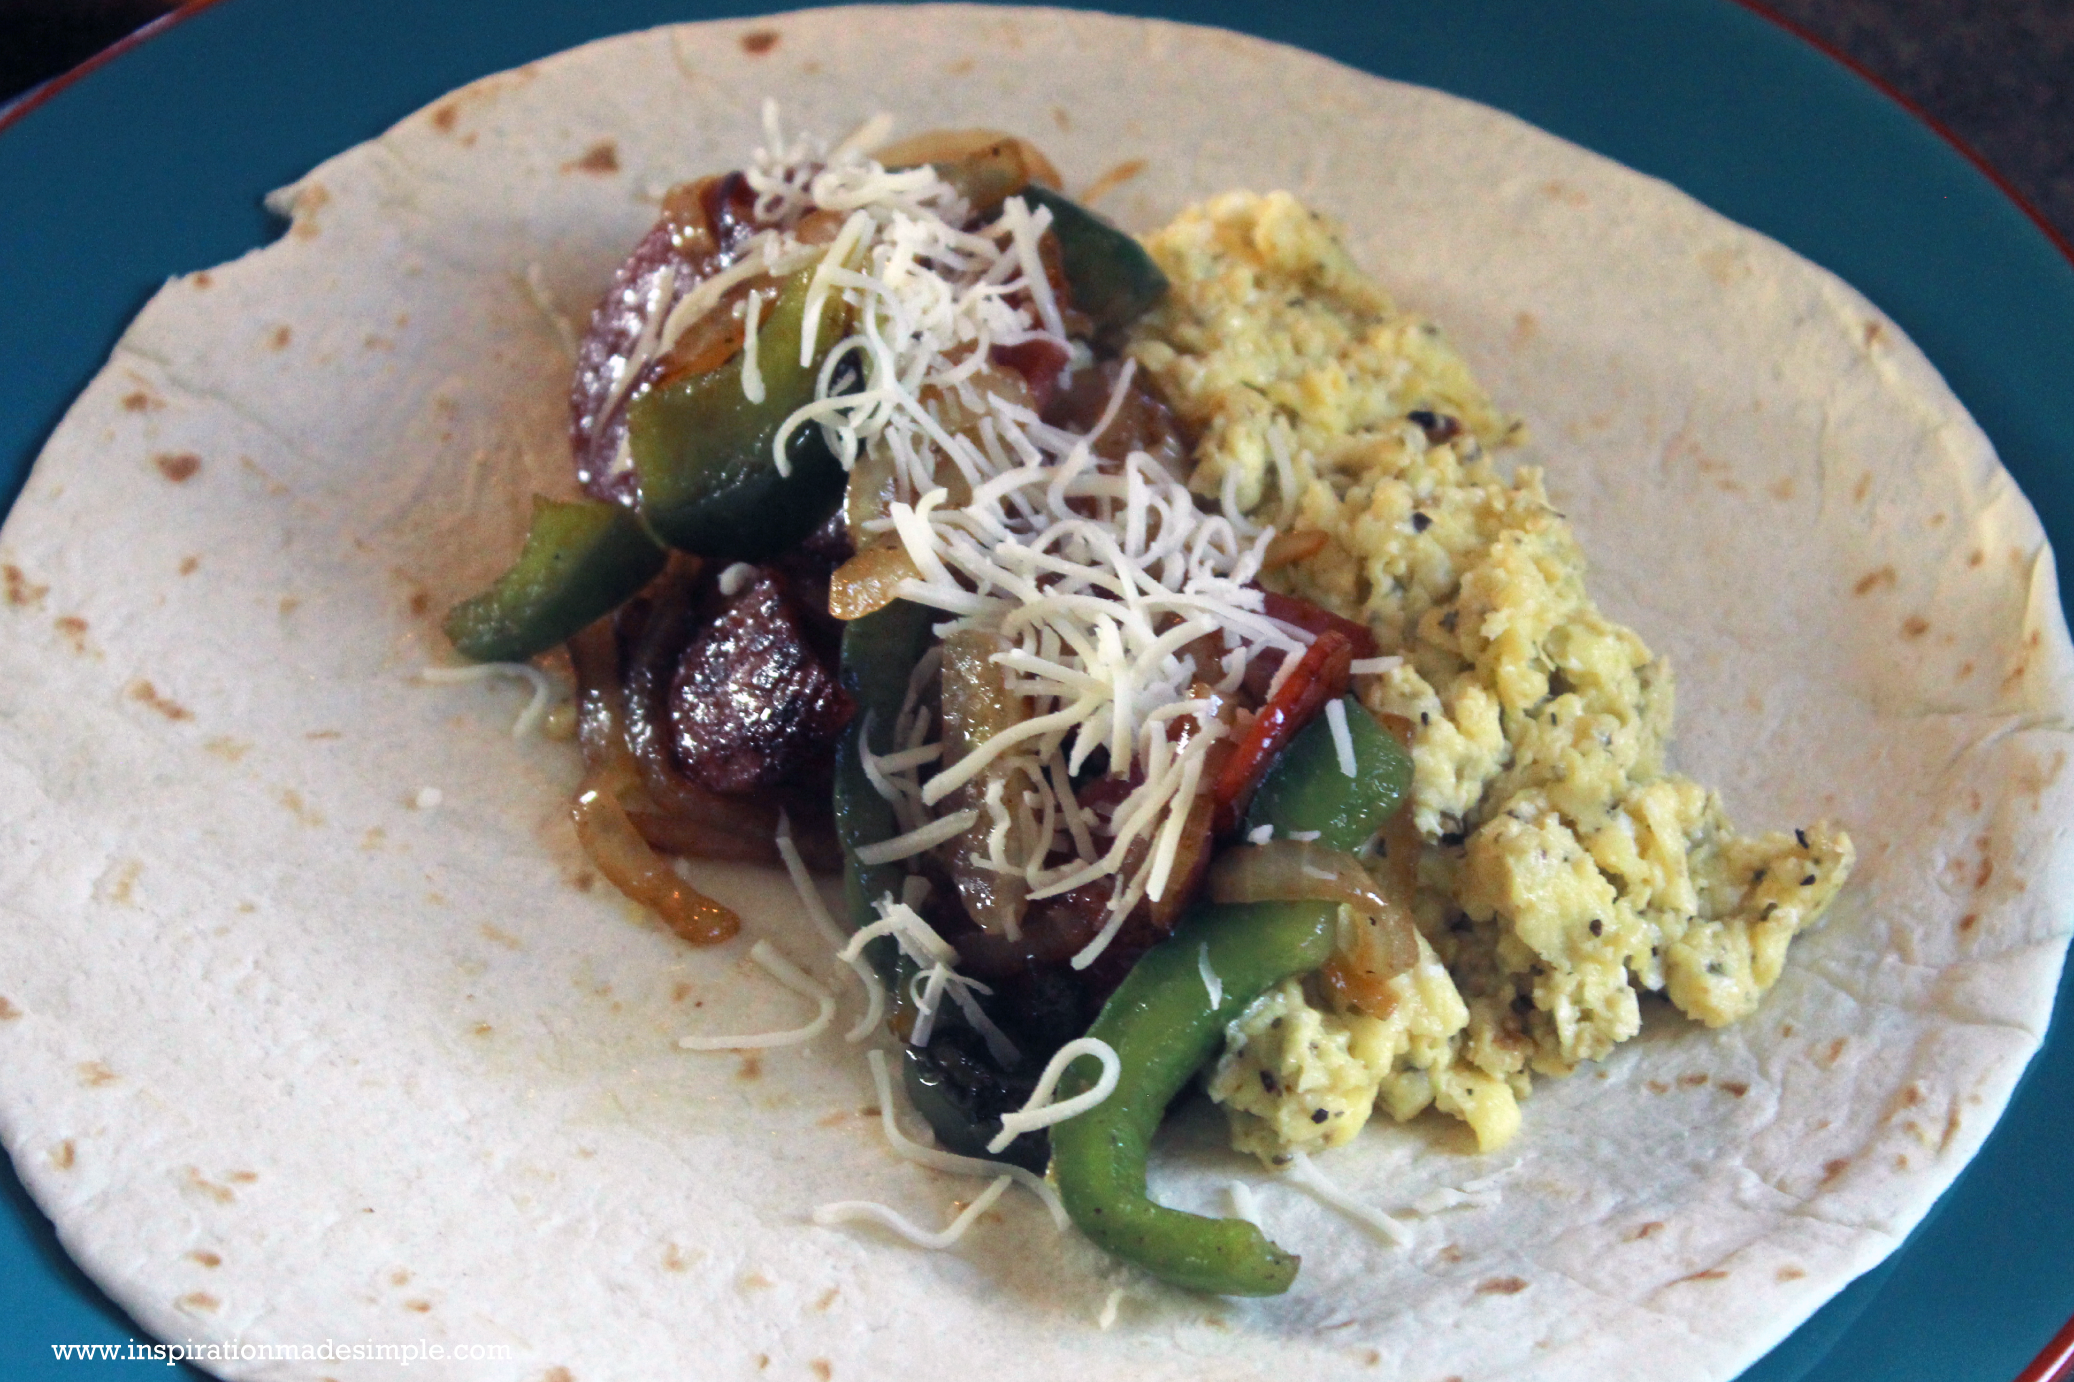 Italian Style Breakfast Burrito Recipe